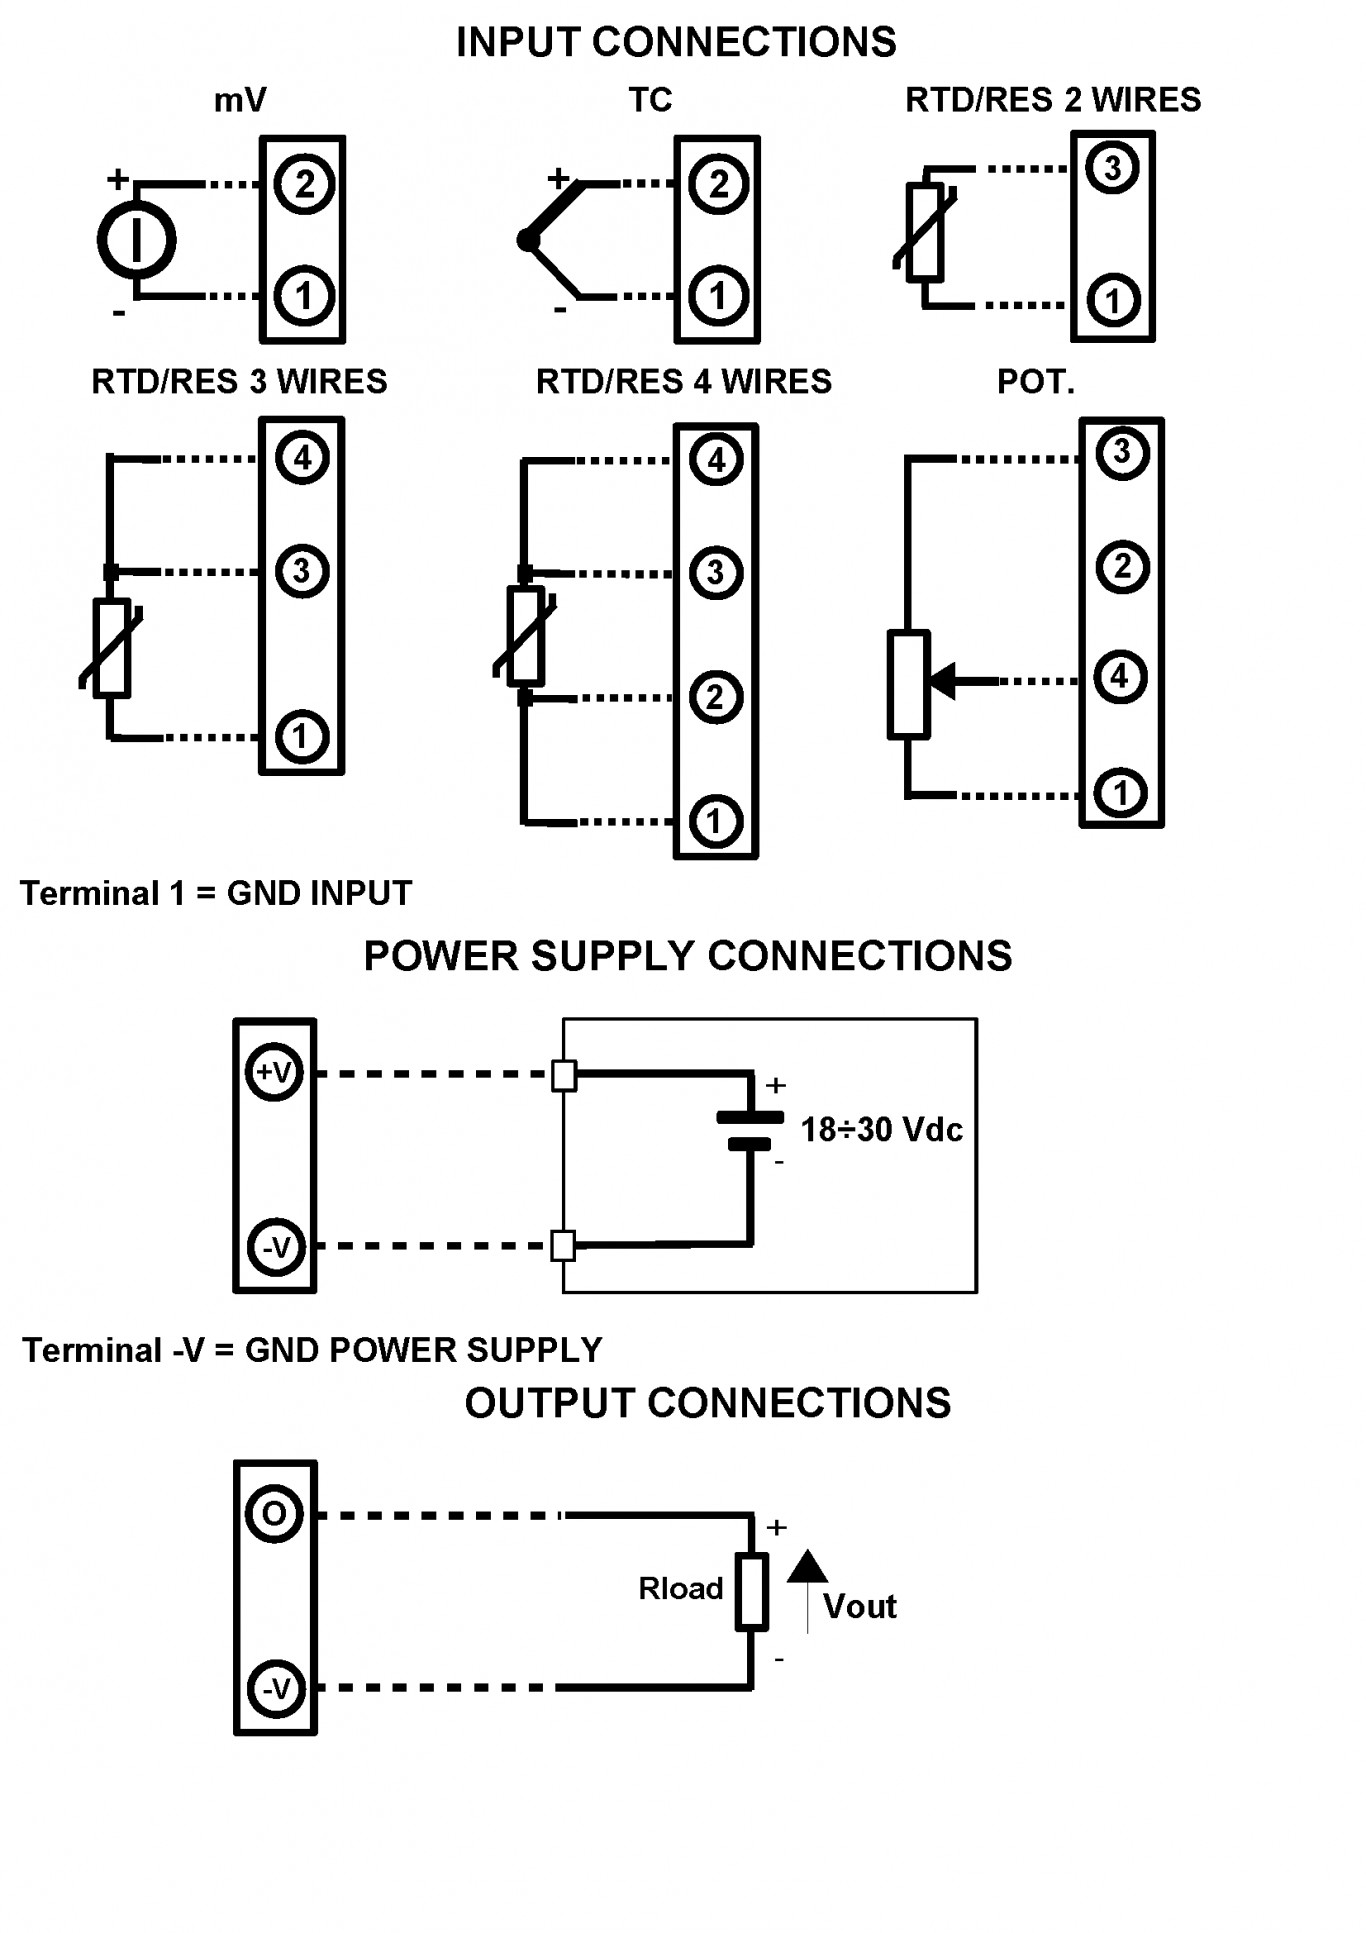 rtd wiring diagram Collection-Thermocouple Wiring Diagram Book Perfect Rtd Wire Colors Collection Electrical Circuit Diagram 6-f